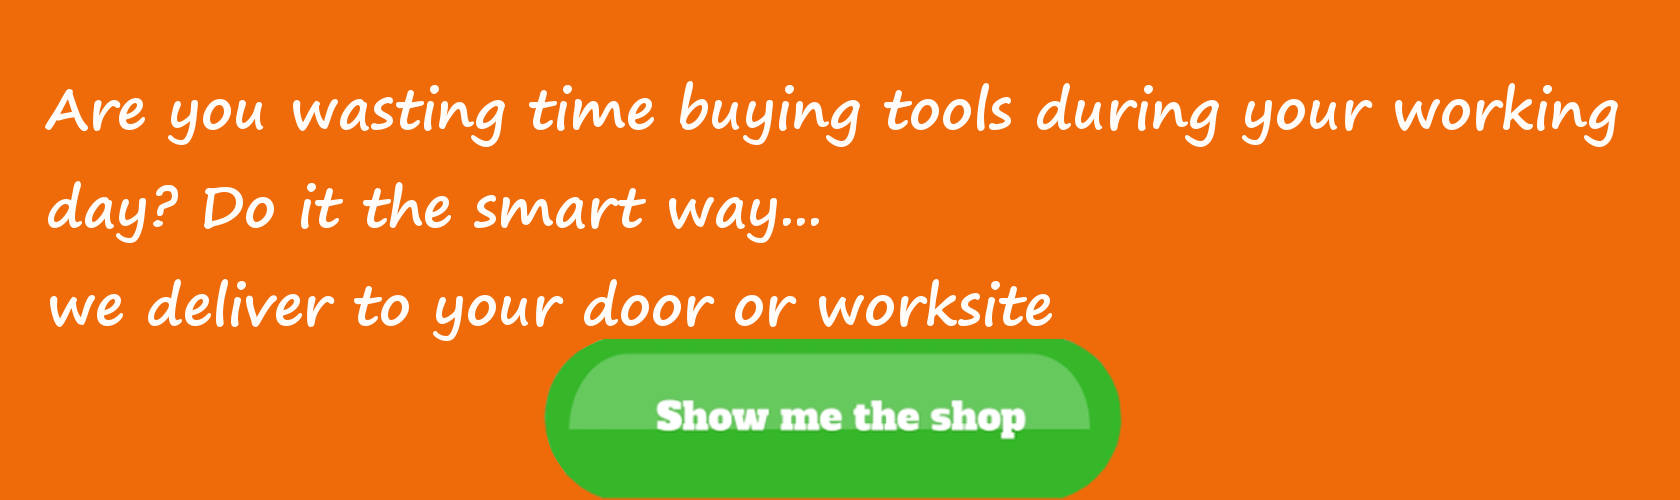 Bricklaying Tools and Concreting Tools for sale online with Australia wide delivery